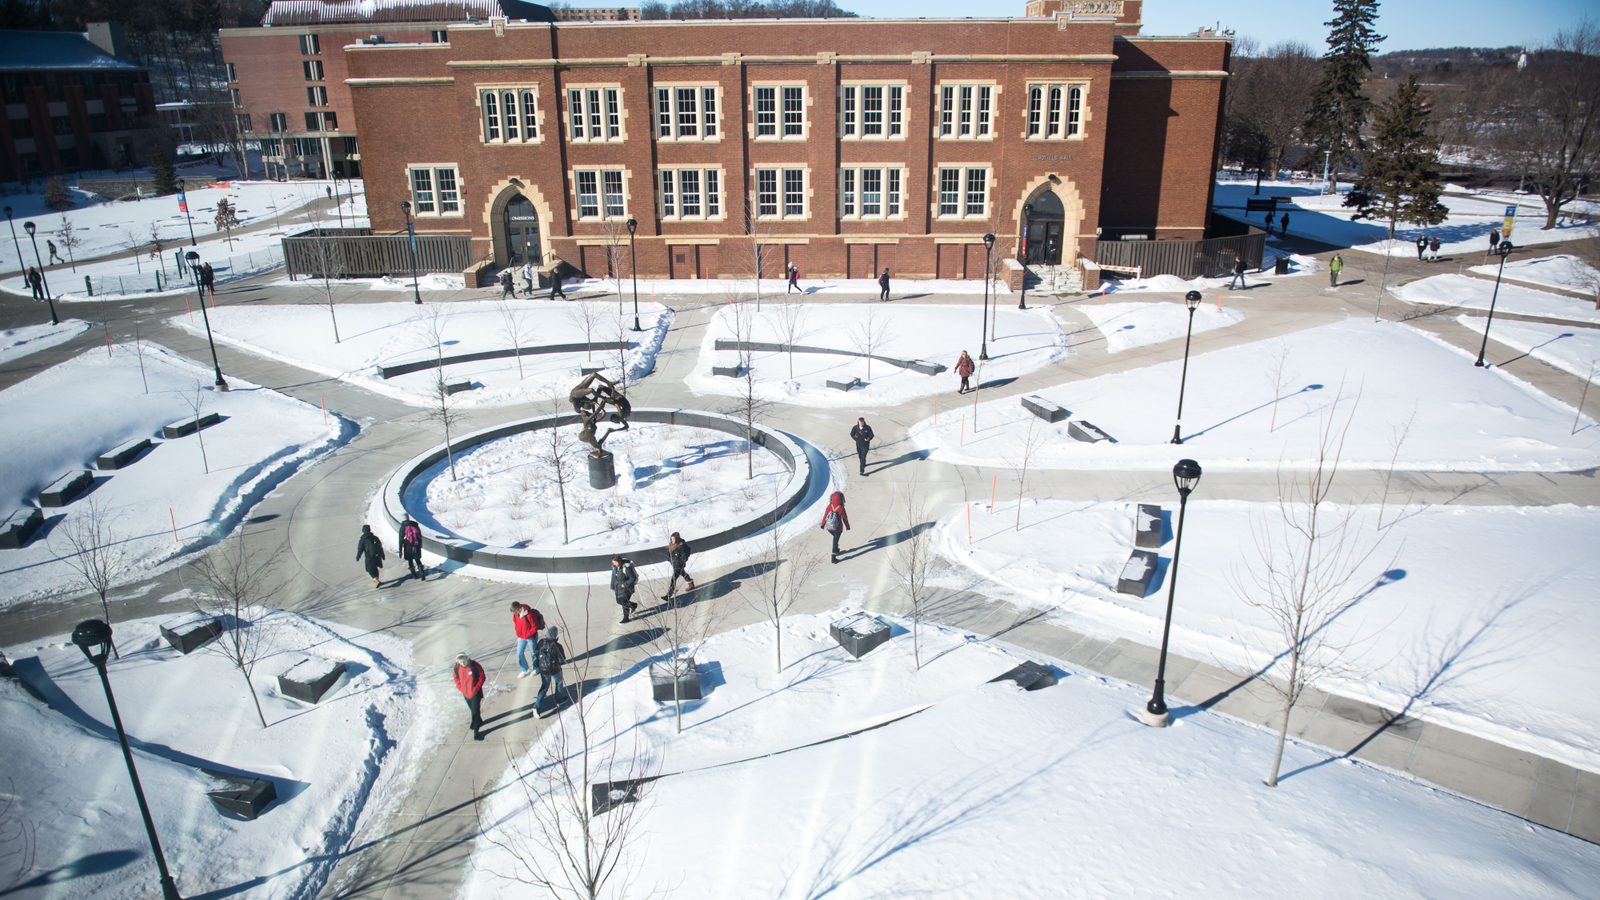 Winter campus mall scene